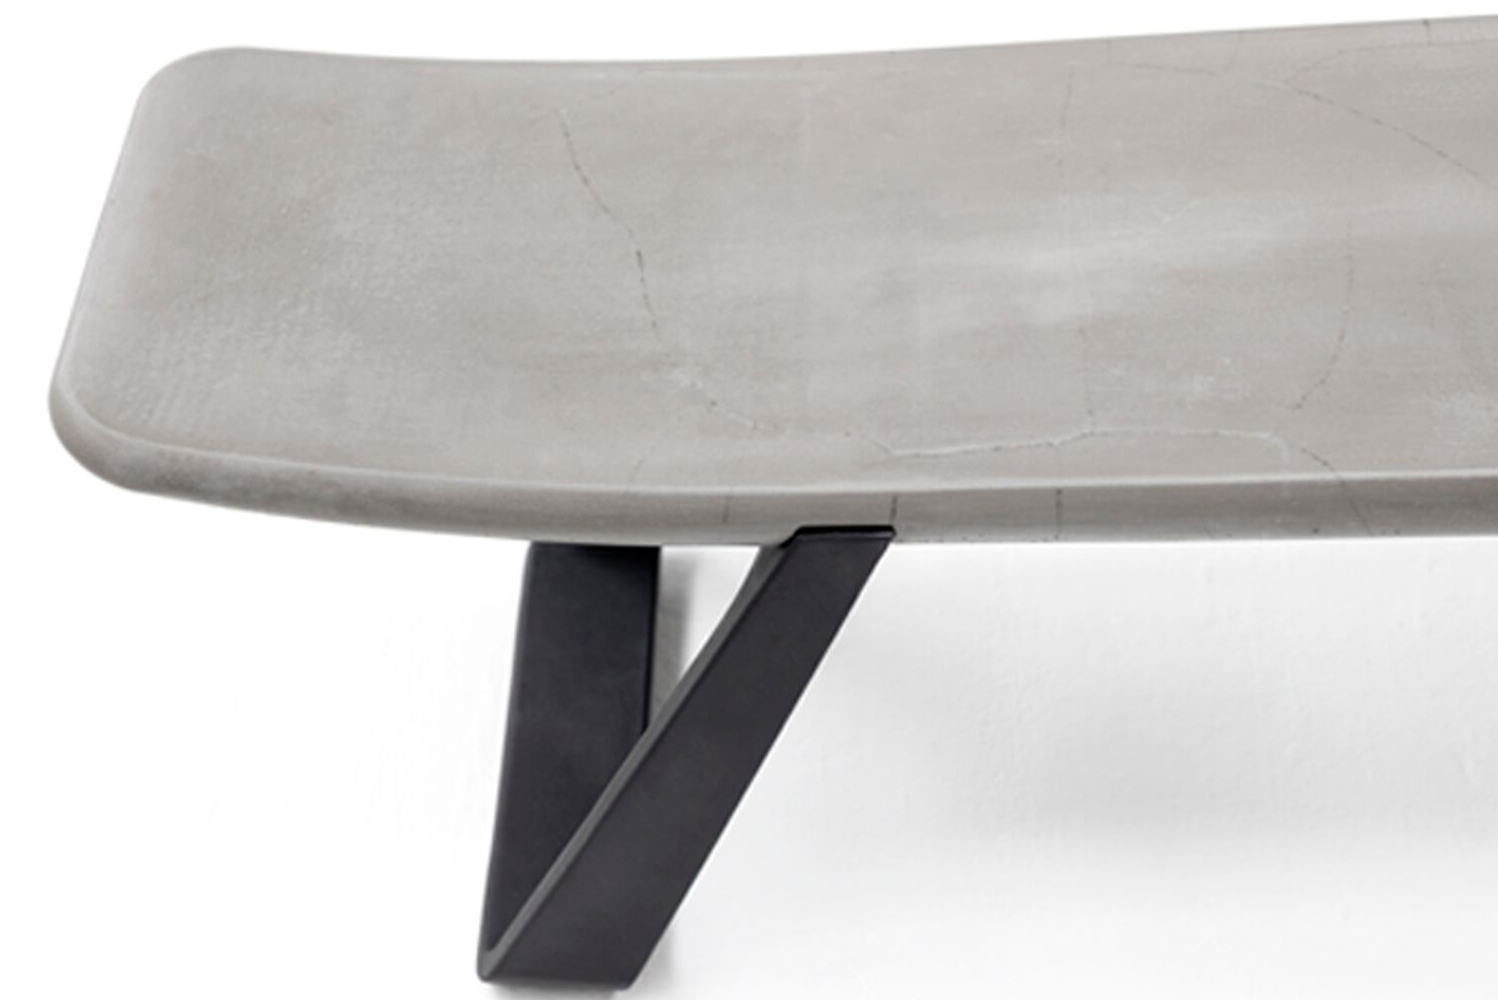 Toronto-based furniture manufacturer Nienkämper launched the Perplex bench.